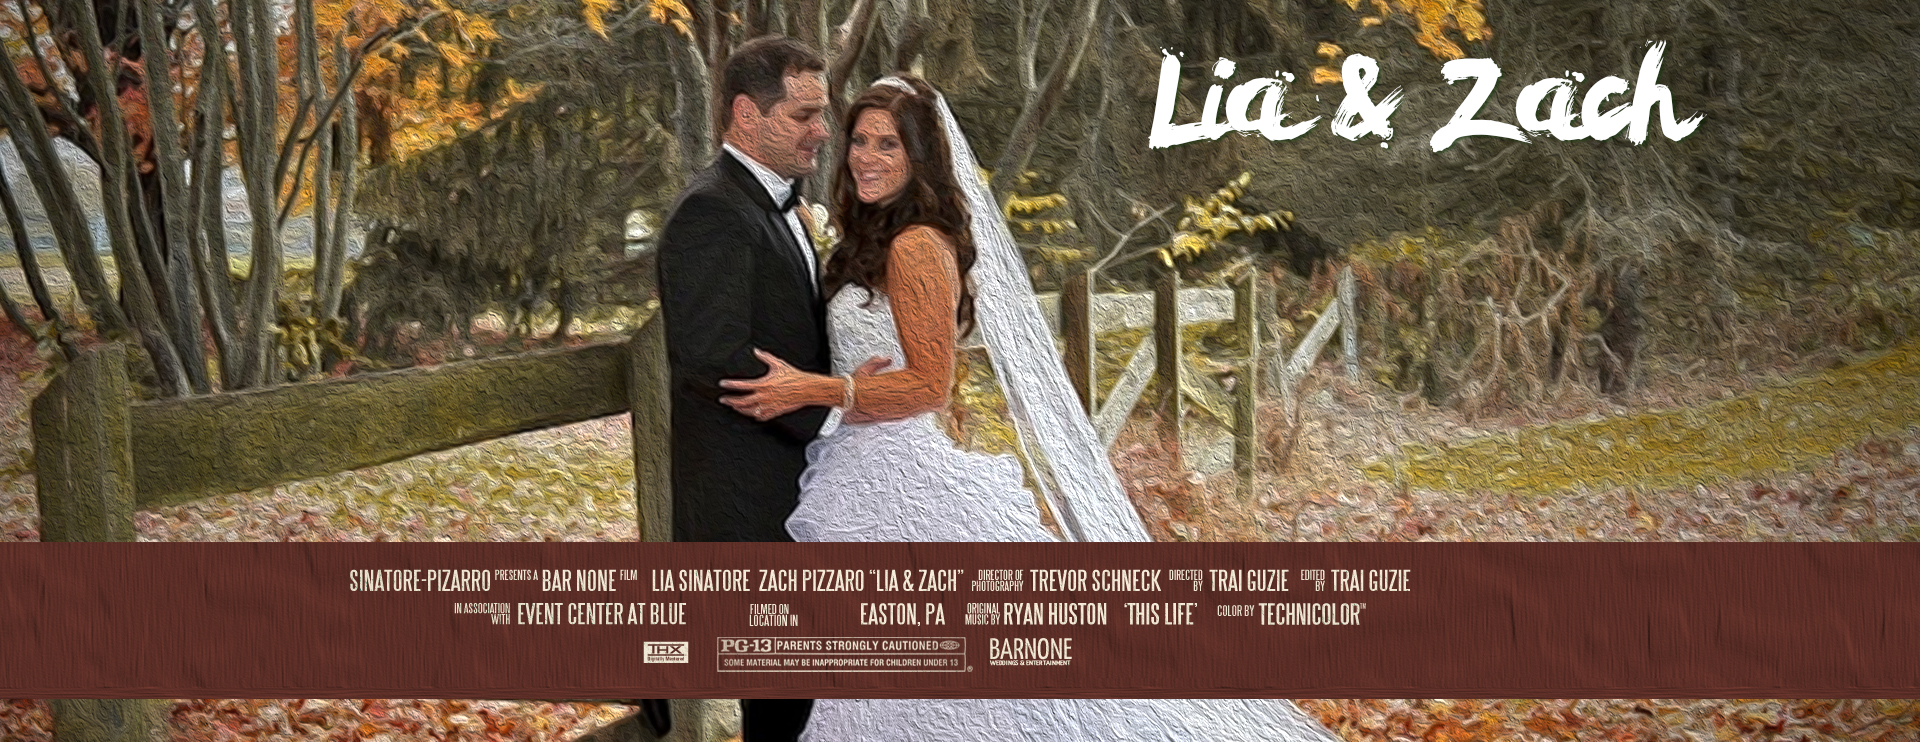 Movie Poster - Lia & Zach - Event Center at Blue Wedding Film